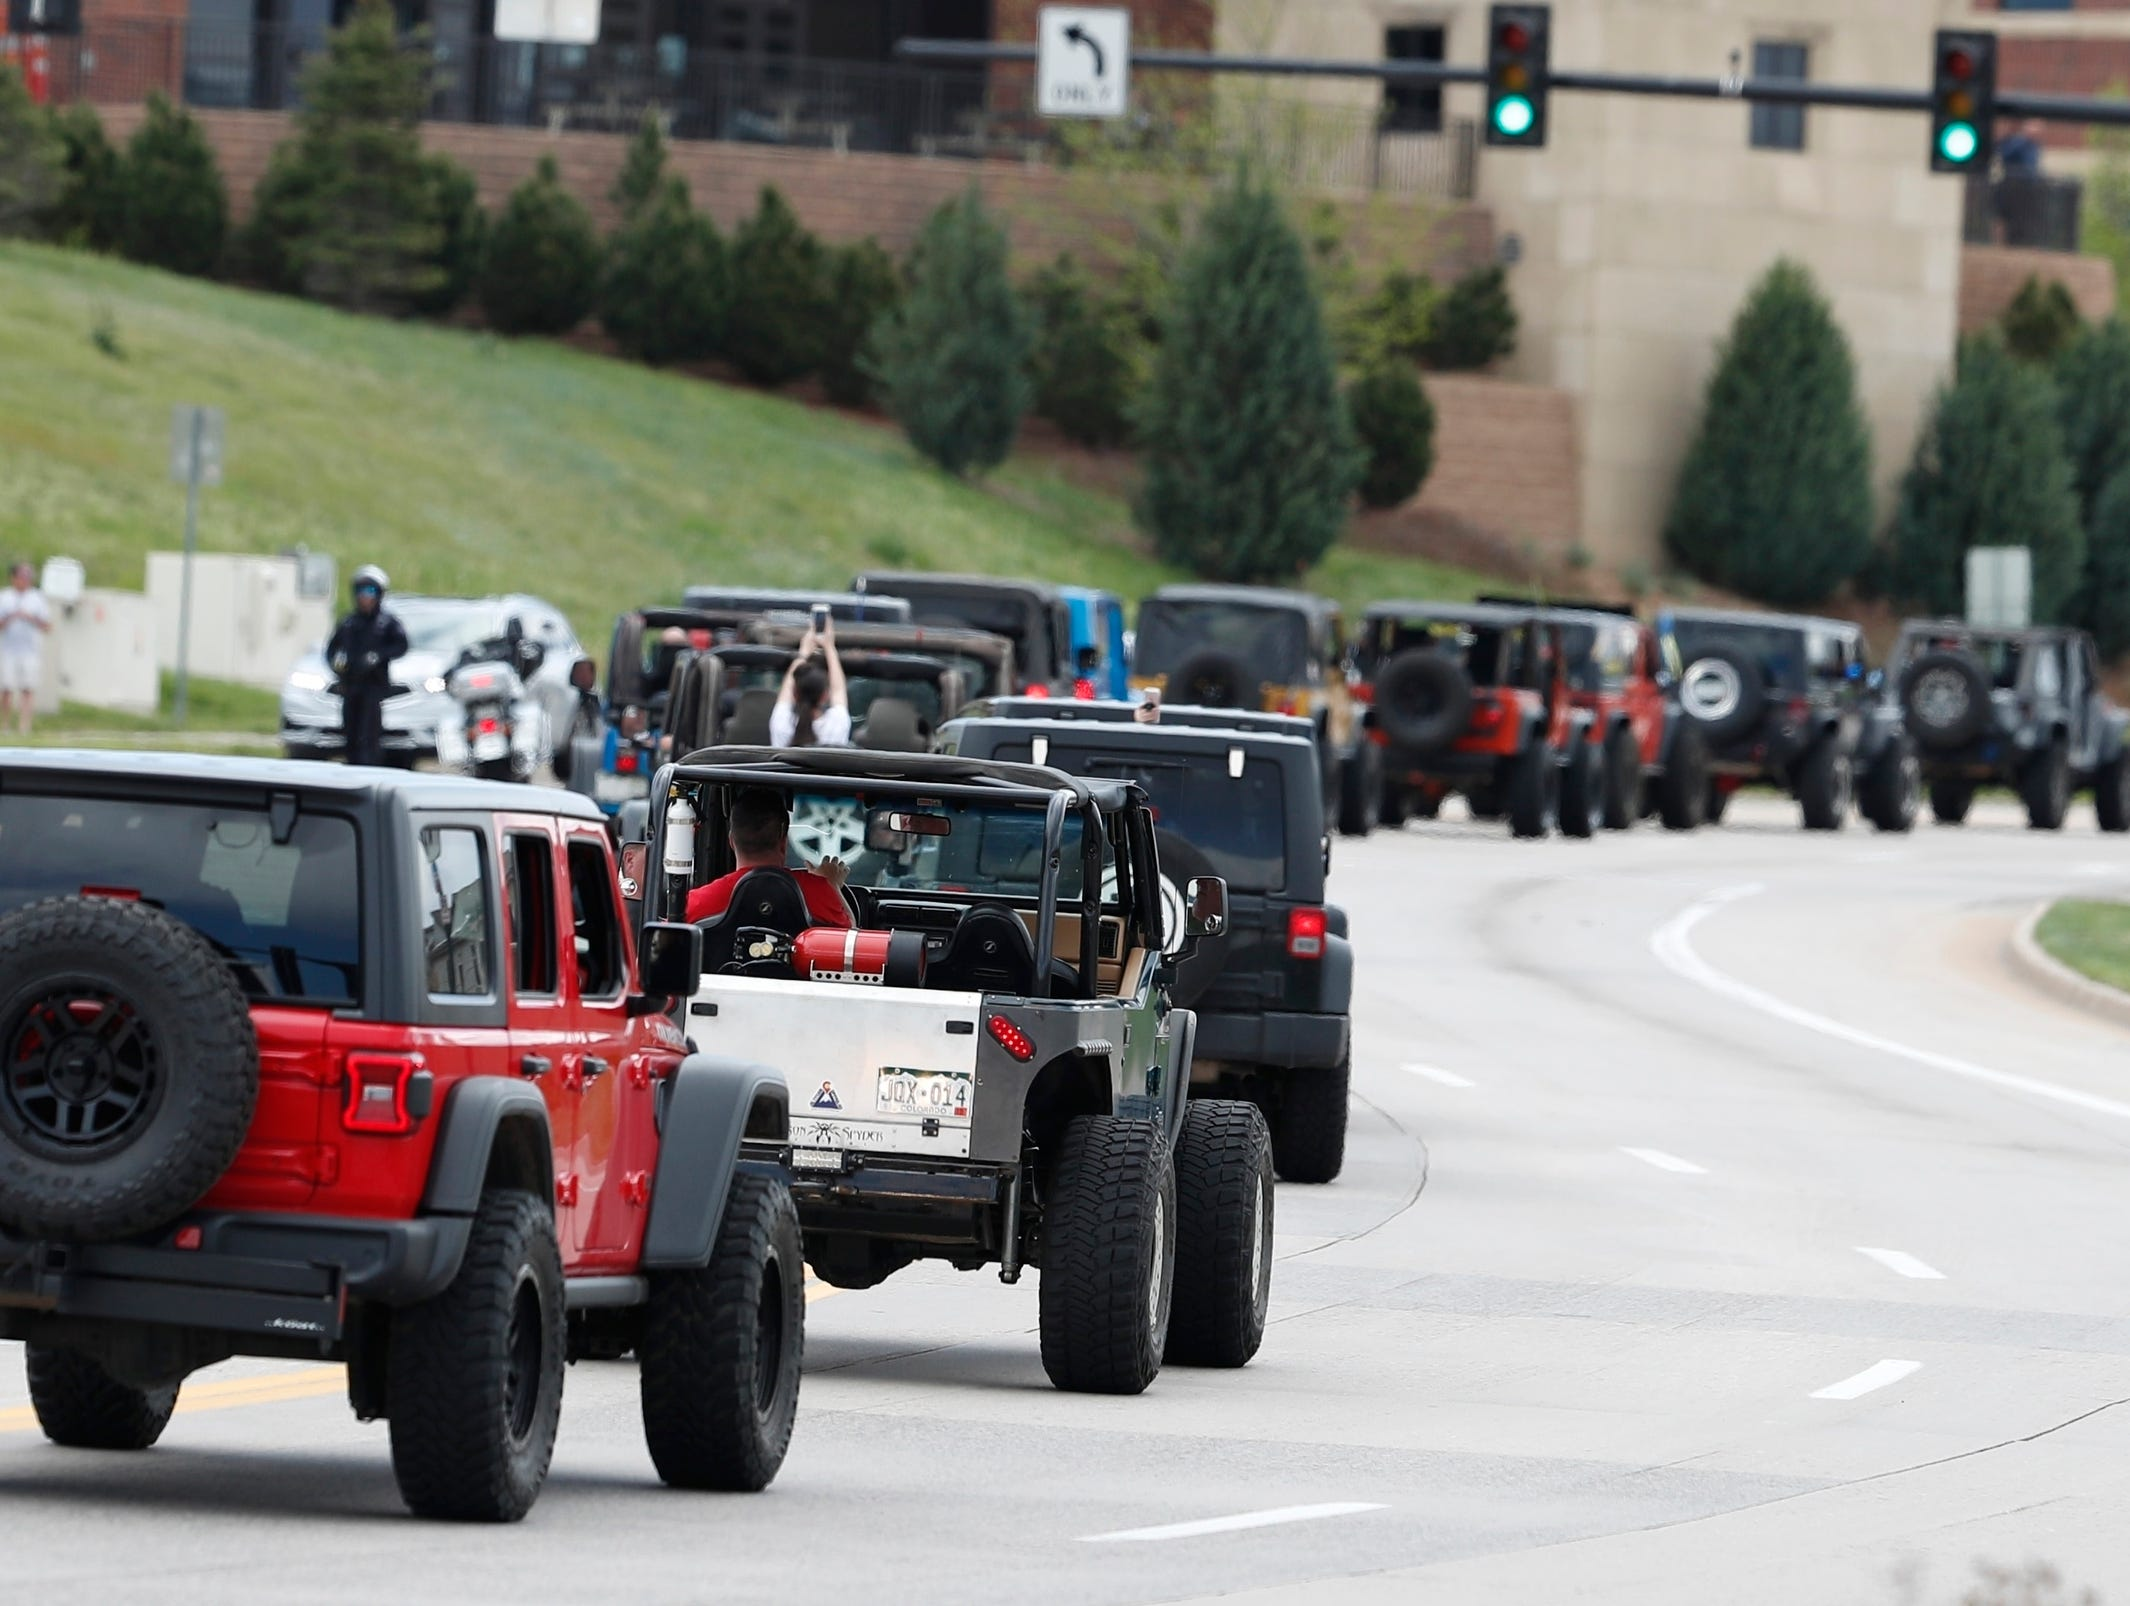 More than 600 Jeeps lead a caravan Wednesday, May 15, 2019 to the memorial service for Kendrick Castillo, who was killed in the assault on the STEM Highlands Ranch School, in Highlands Ranch, Colo.